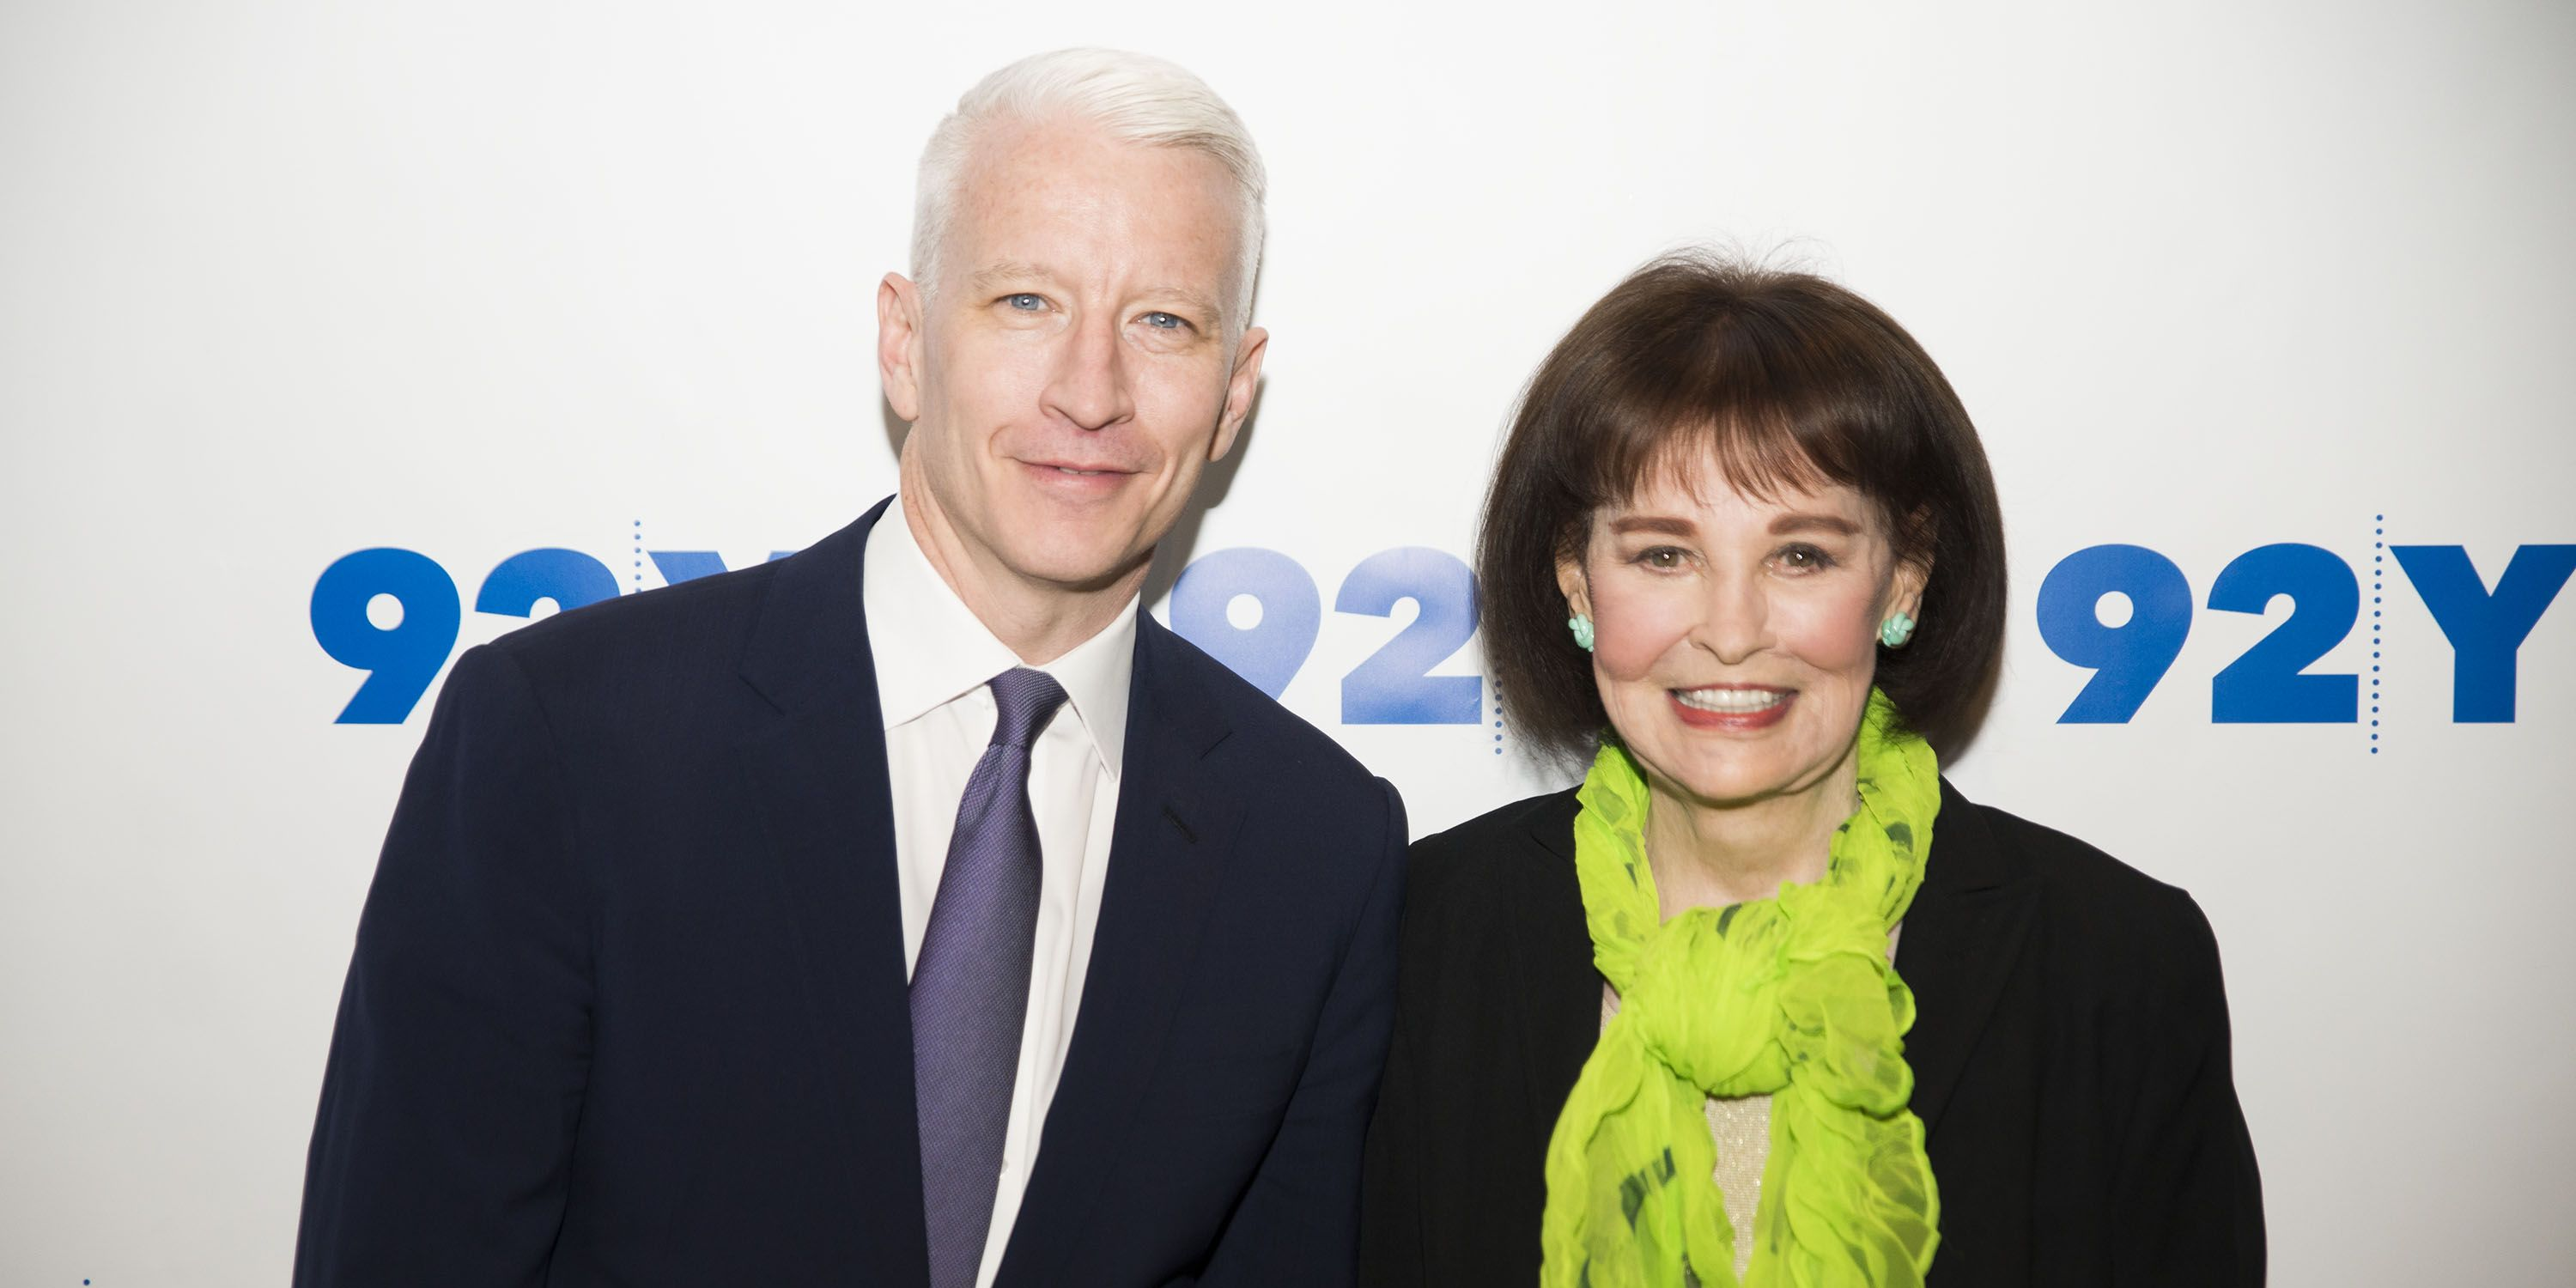 Anderson Cooper Pays Tribute to His Mother Gloria Vanderbilt on Her 95th Birthday